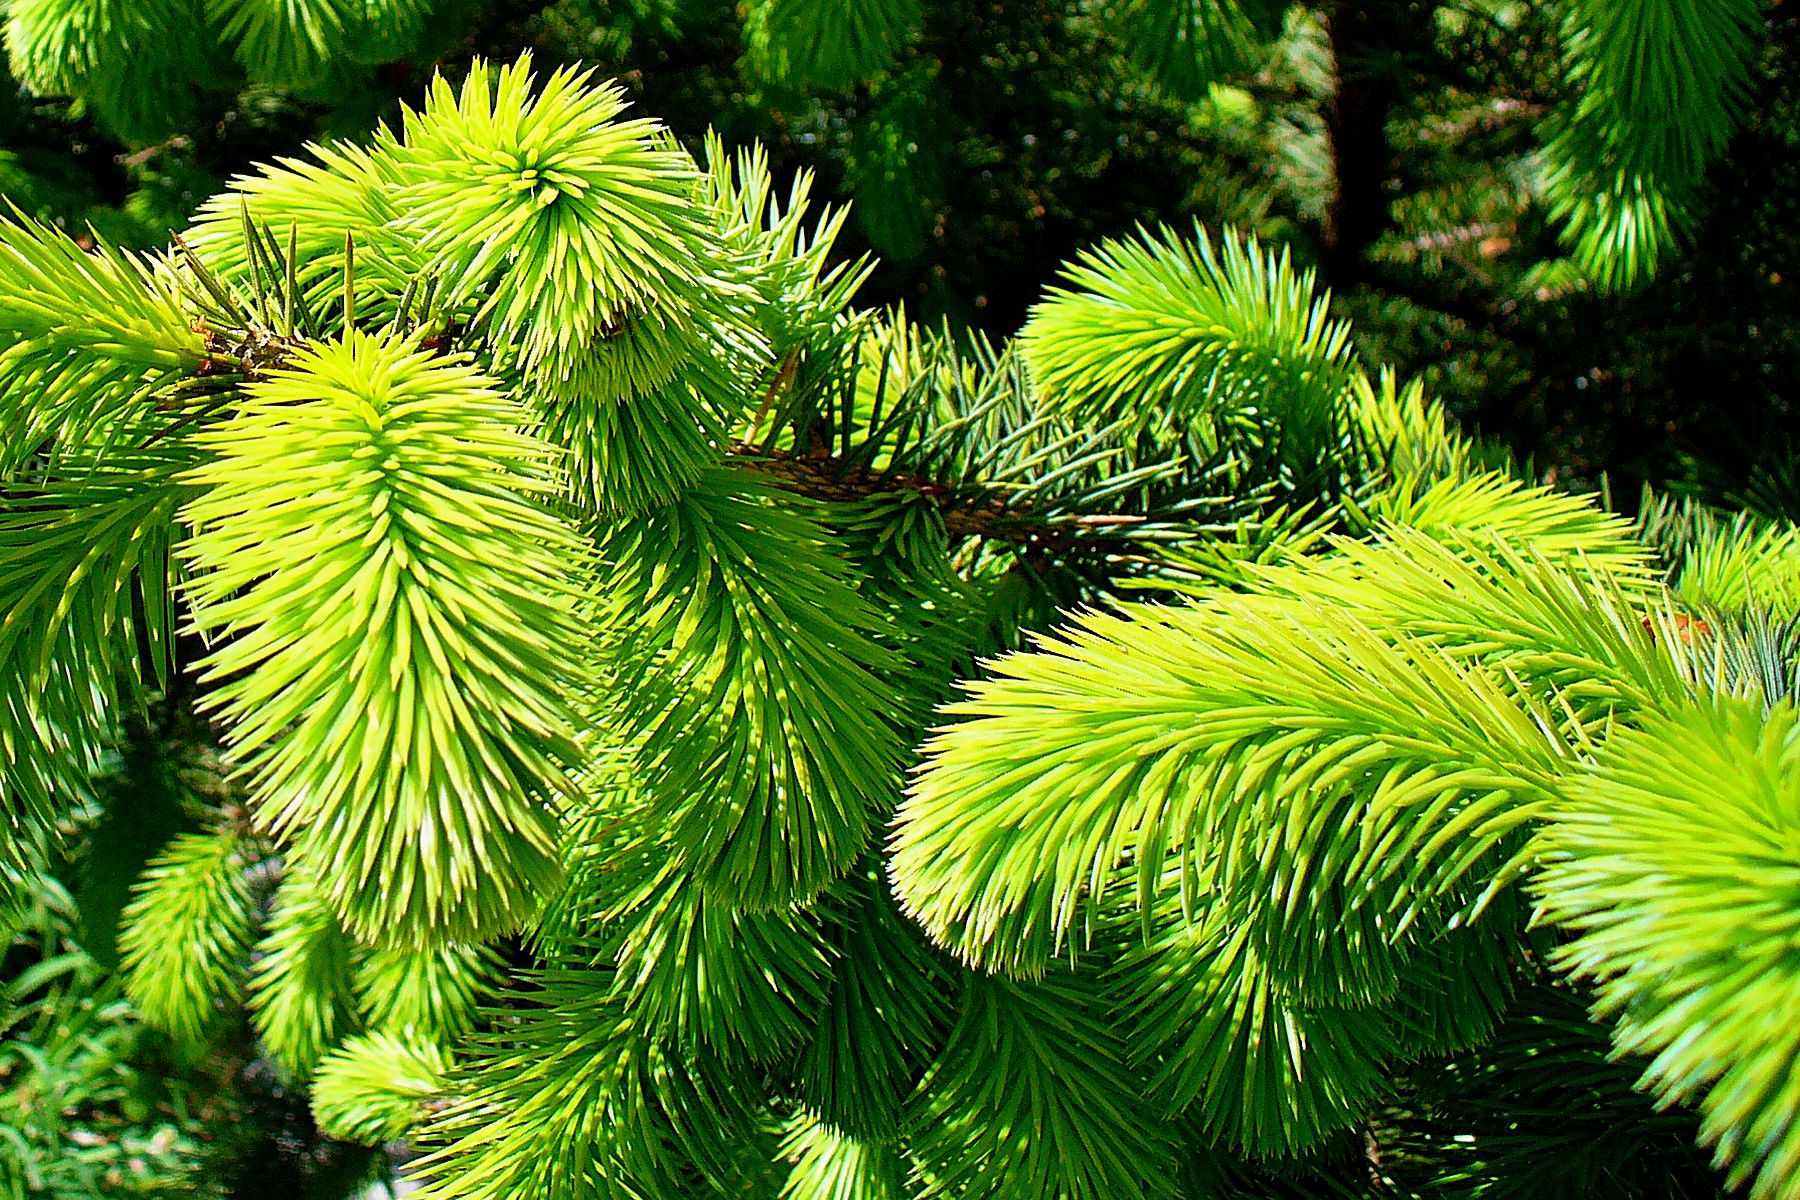 Close up of sitka spruce tree branches.